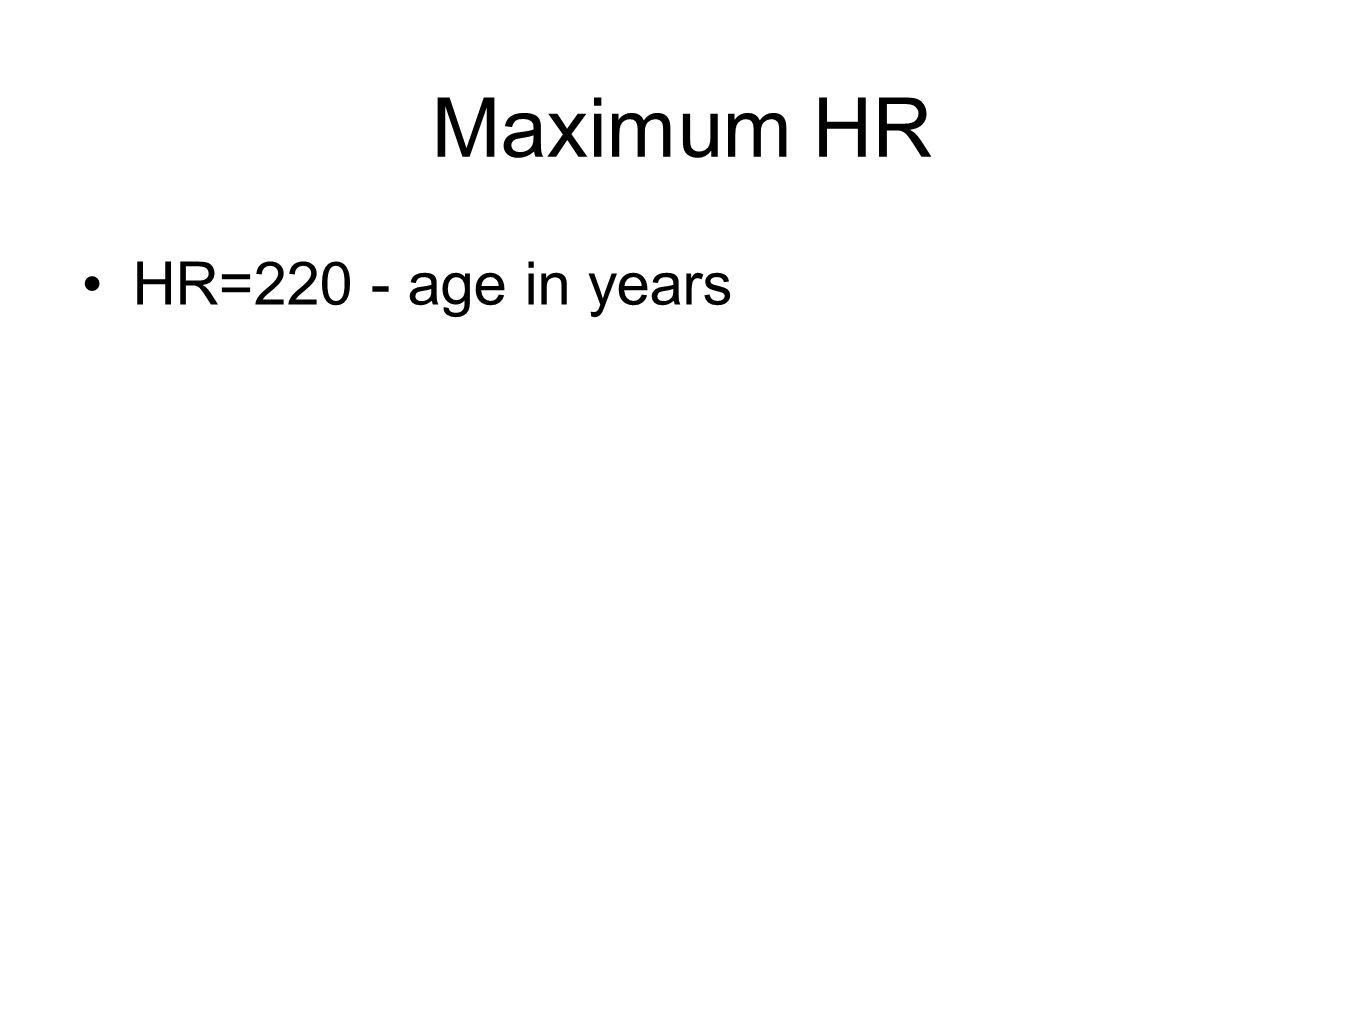 Maximum HR HR=220 - age in years